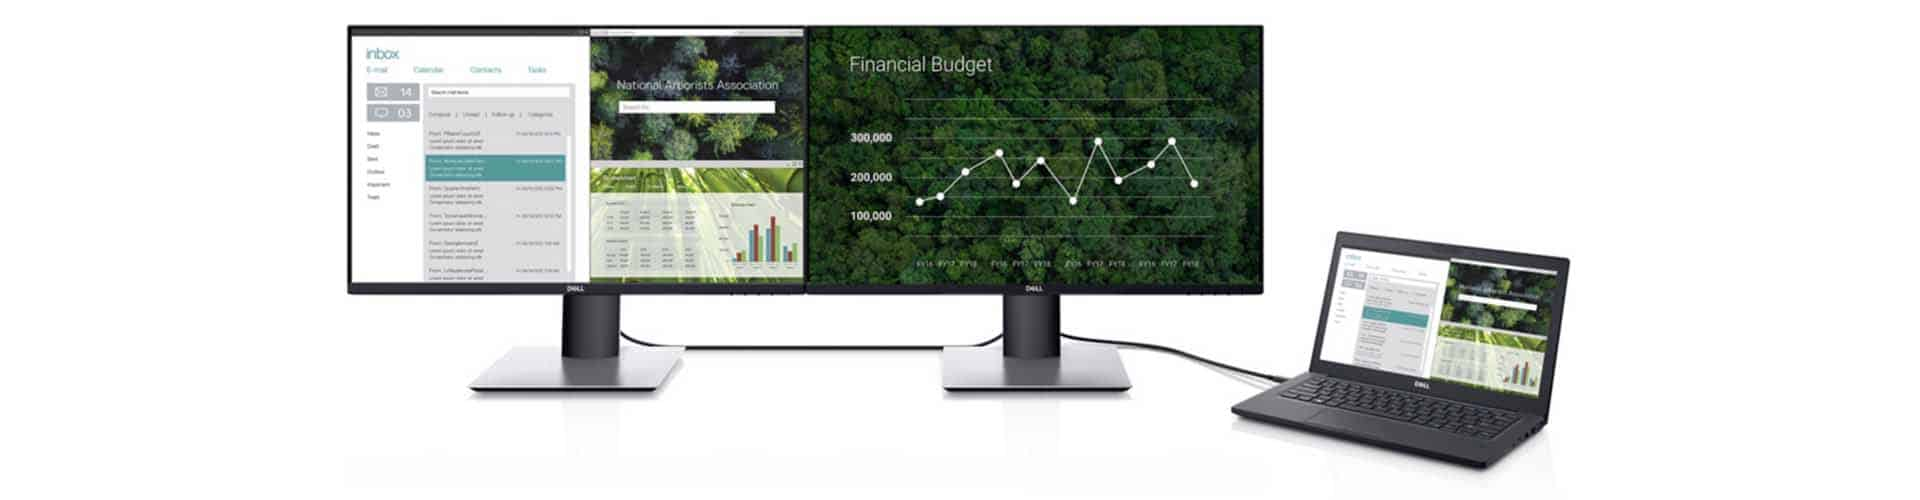 Best USB-C Monitor for Macbook Pro and Windows Laptops